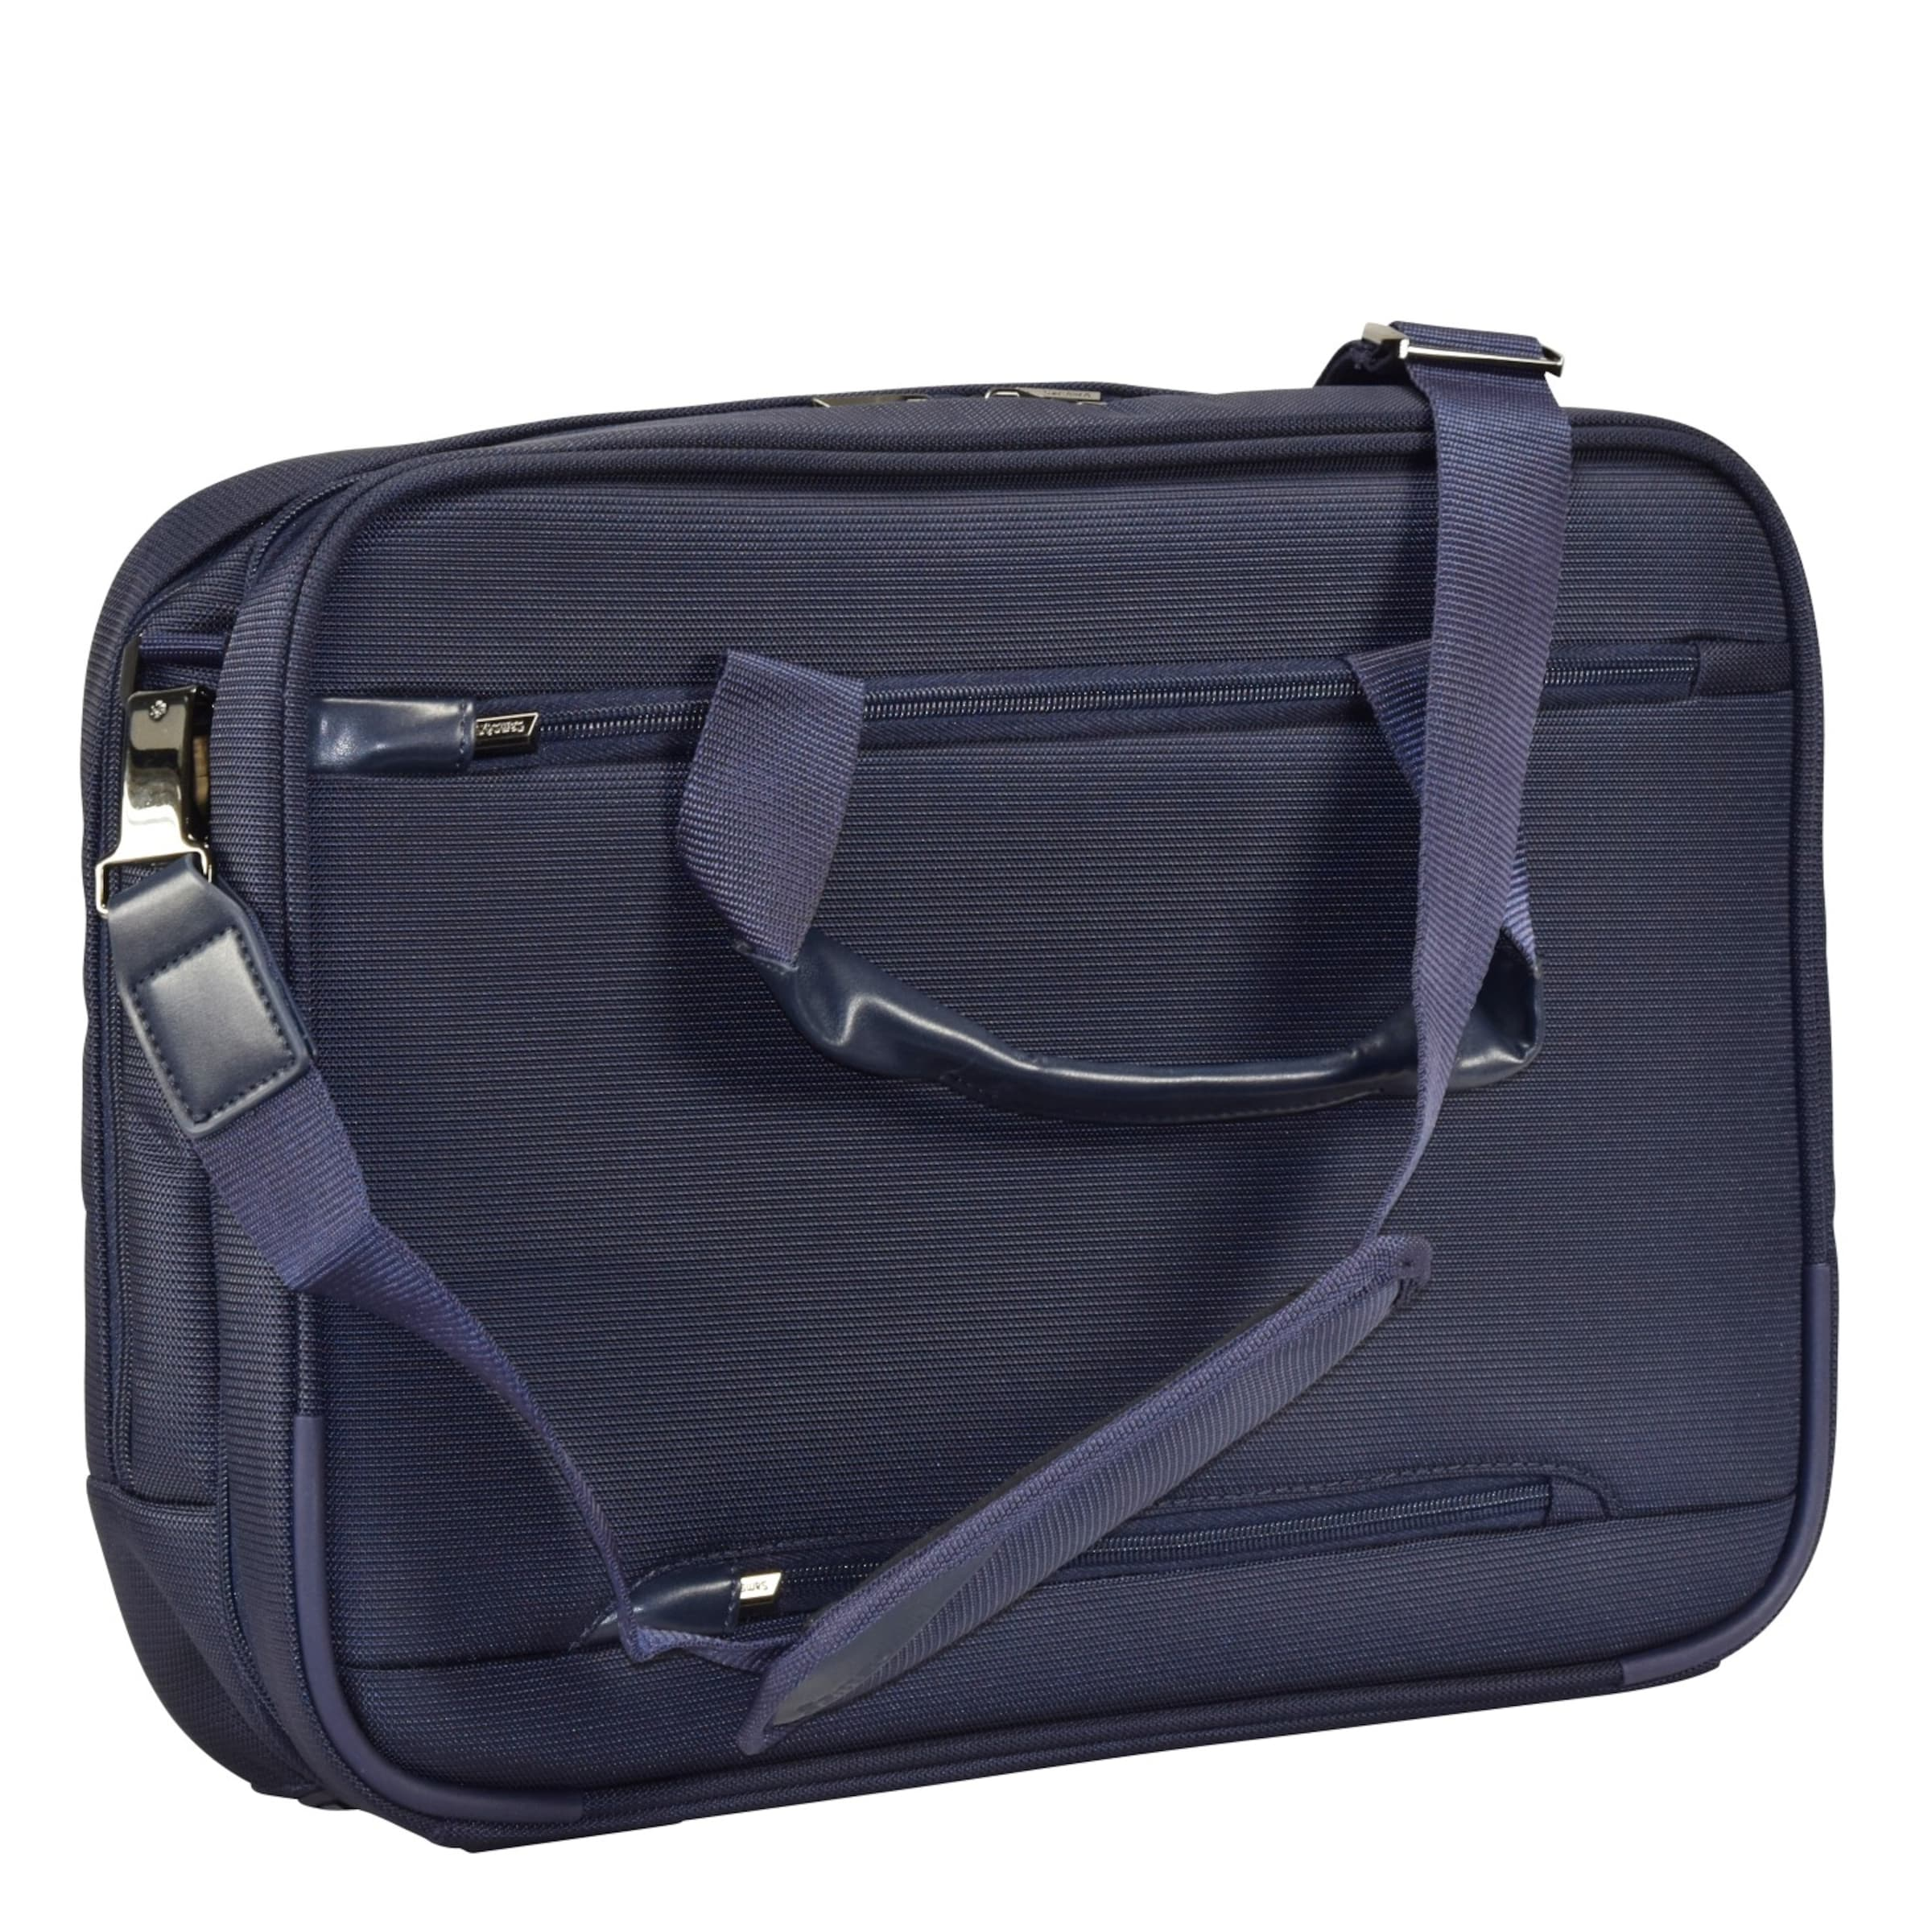 cm SAMSONITE XBR SAMSONITE Aktentasche XBR Laptopfach 44 xApaX